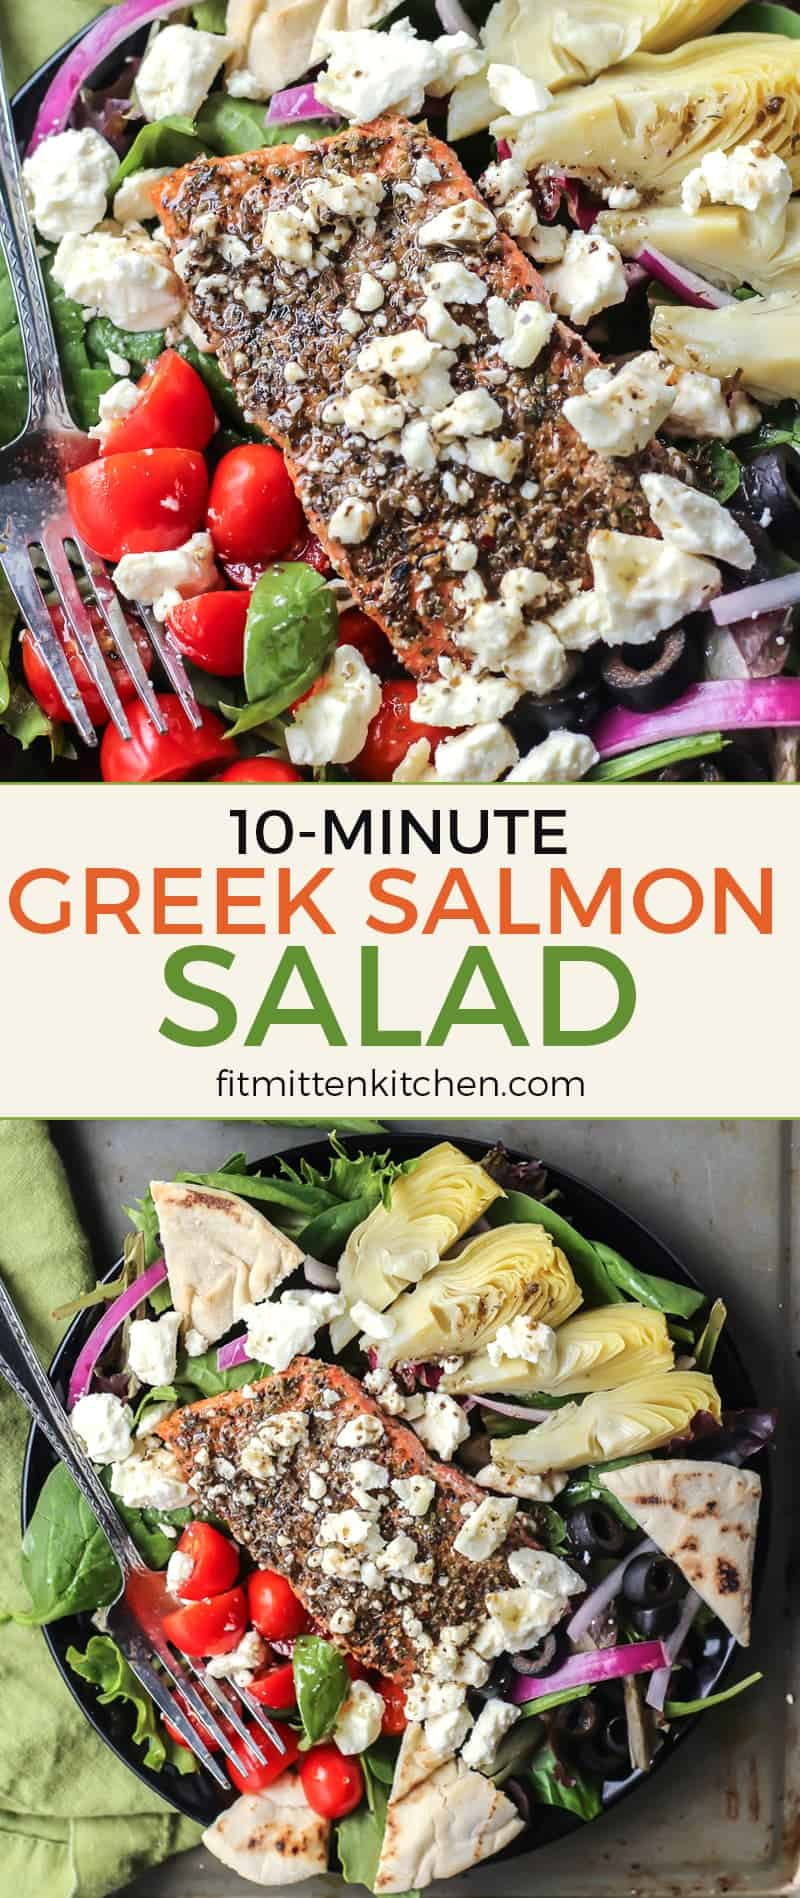 This Greek Salmon Salad is truly amazing! You can prep the veggies while the salmon cooks and you'll have this delicious meal ready in 10 minutes!